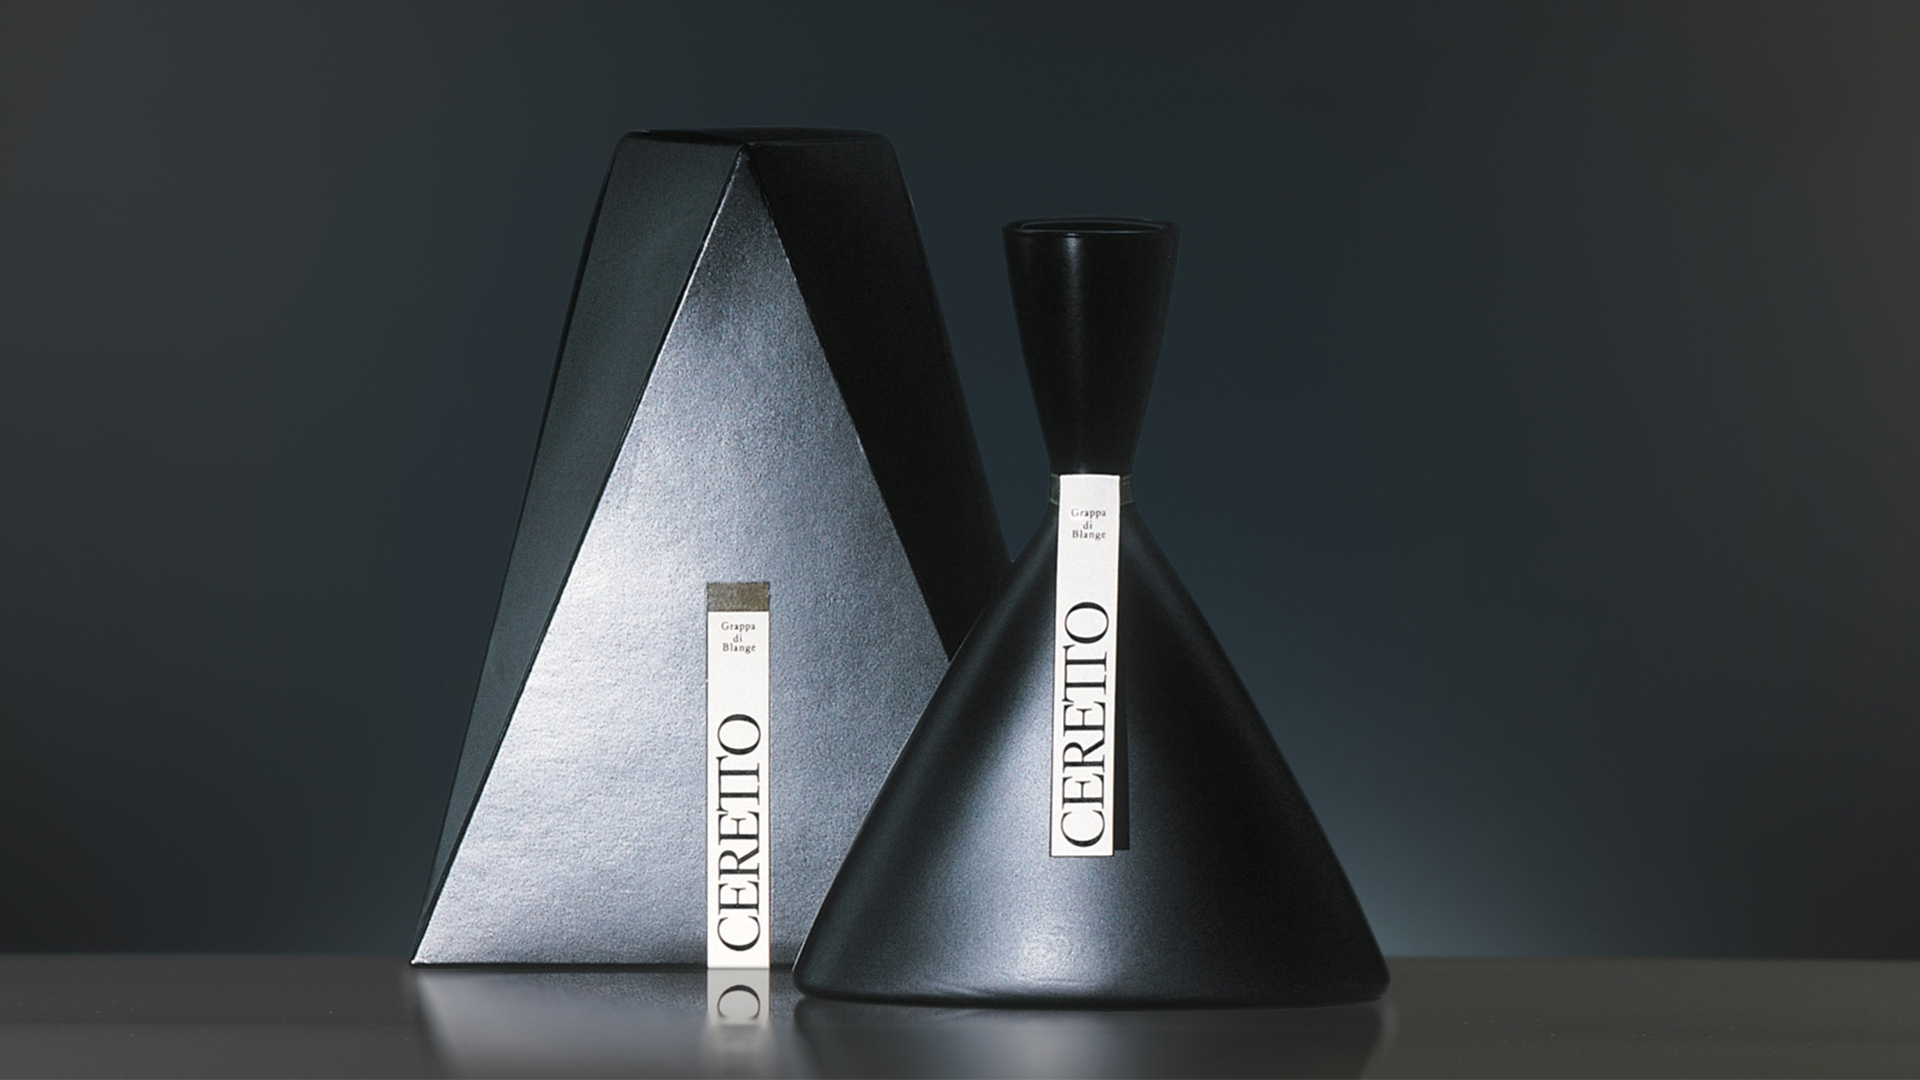 Ceretto bottle design